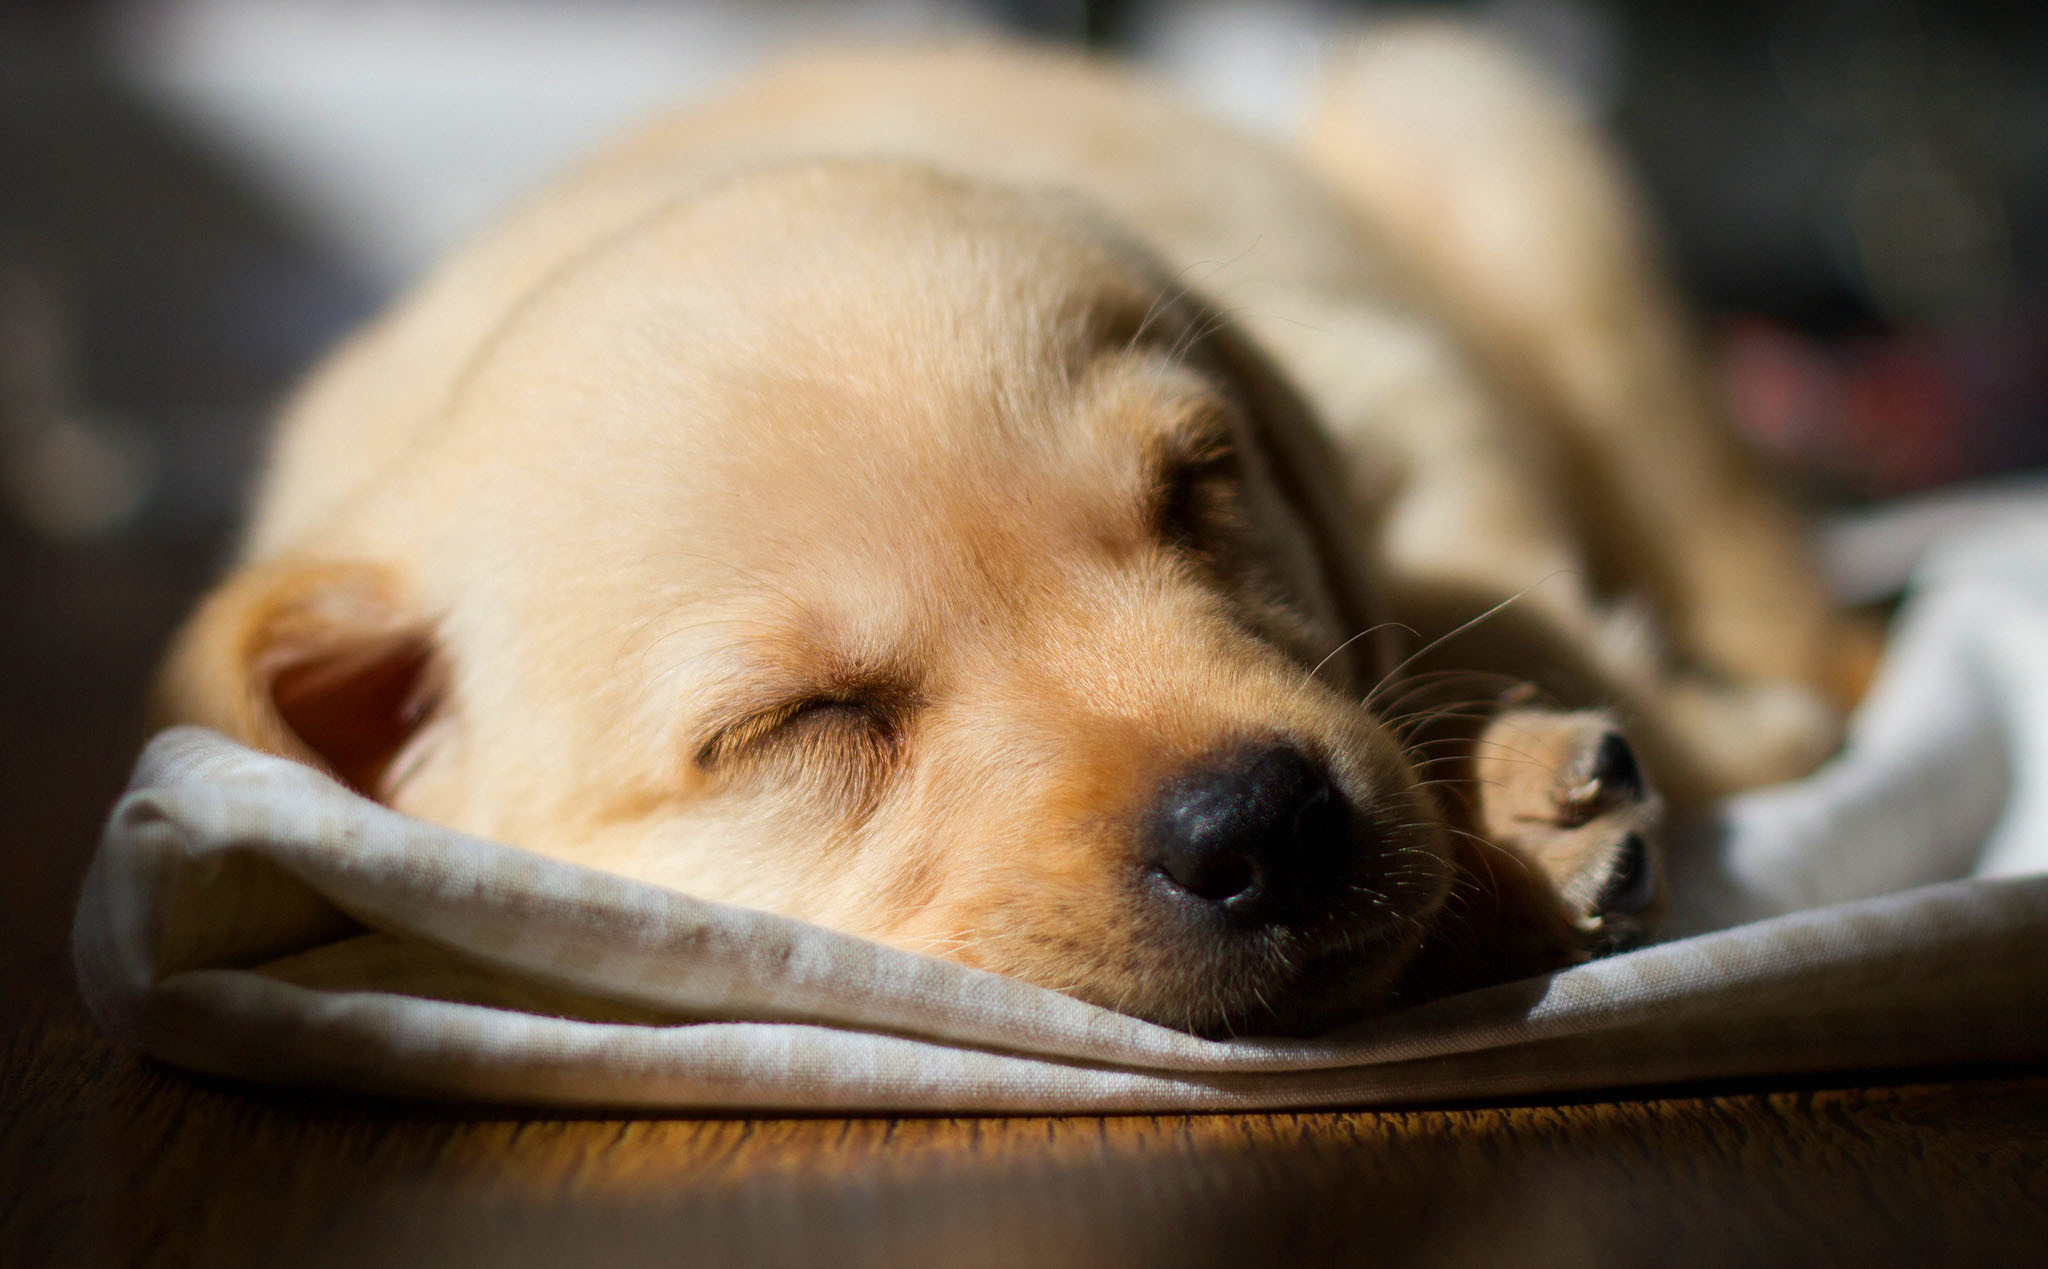 Animals Wallpaper: Lab Puppy Wallpapers Wide for HD Wallpaper 900×600 Lab  Puppies Wallpapers